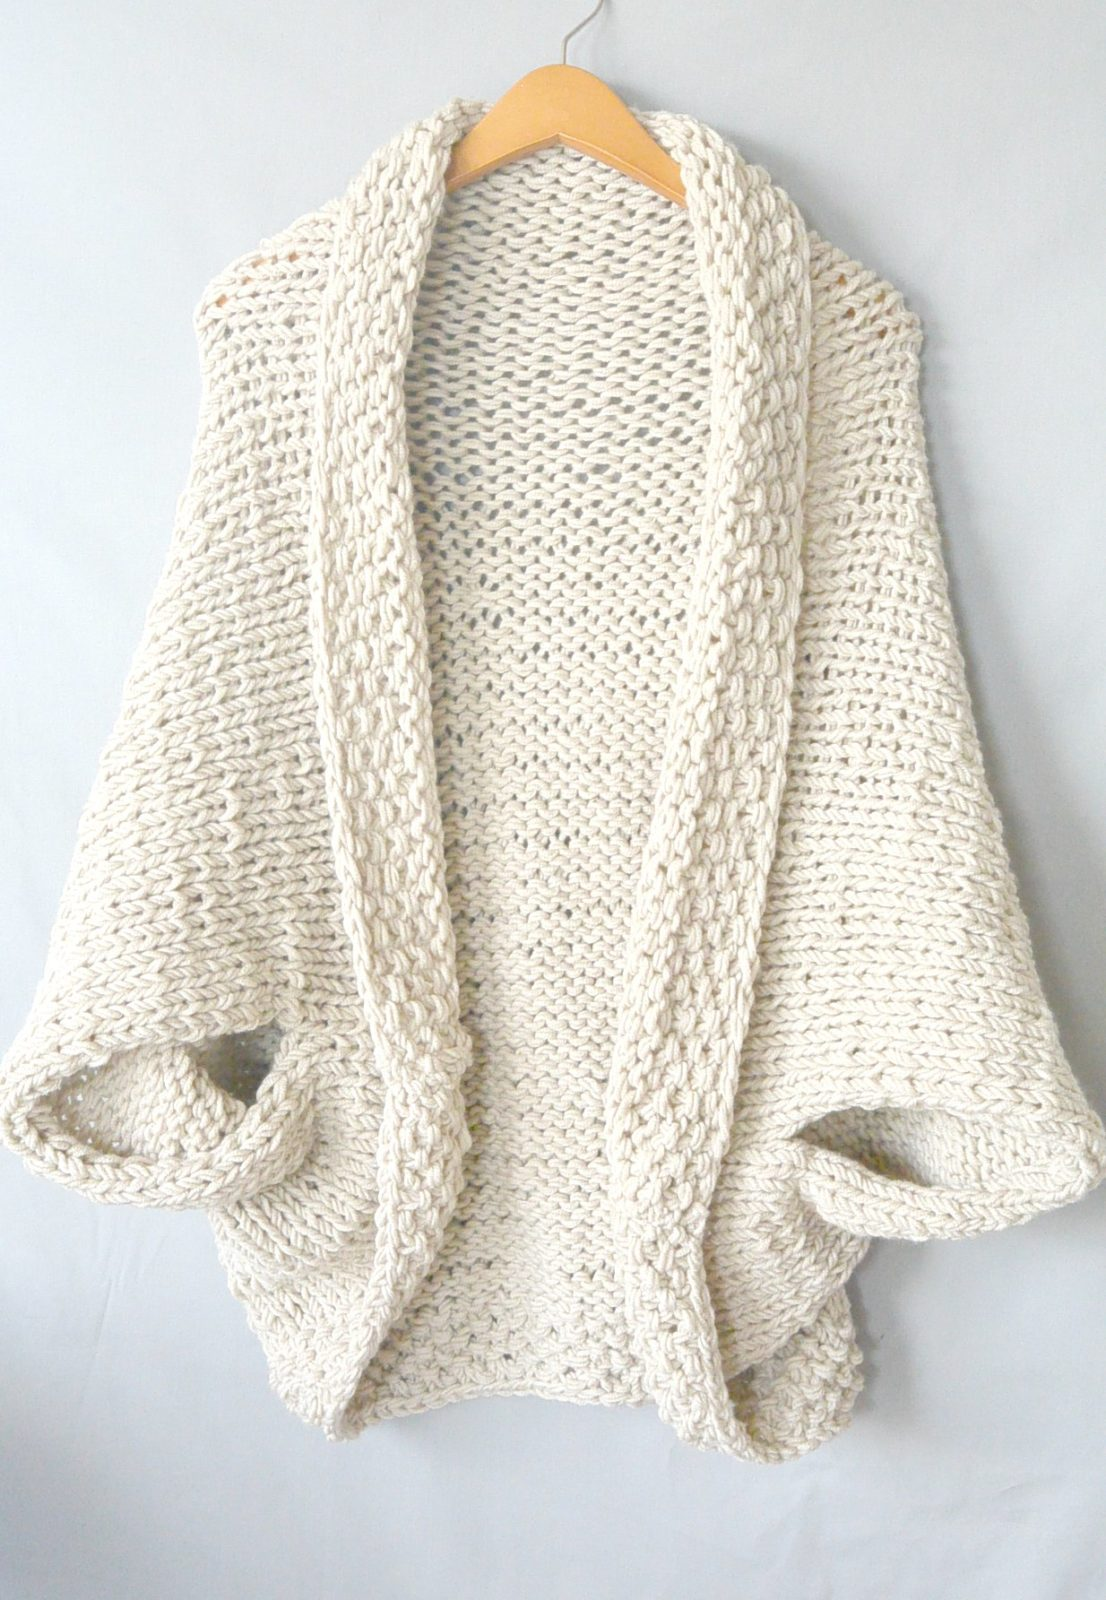 For A Very Easy To Knit Shrug Pattern